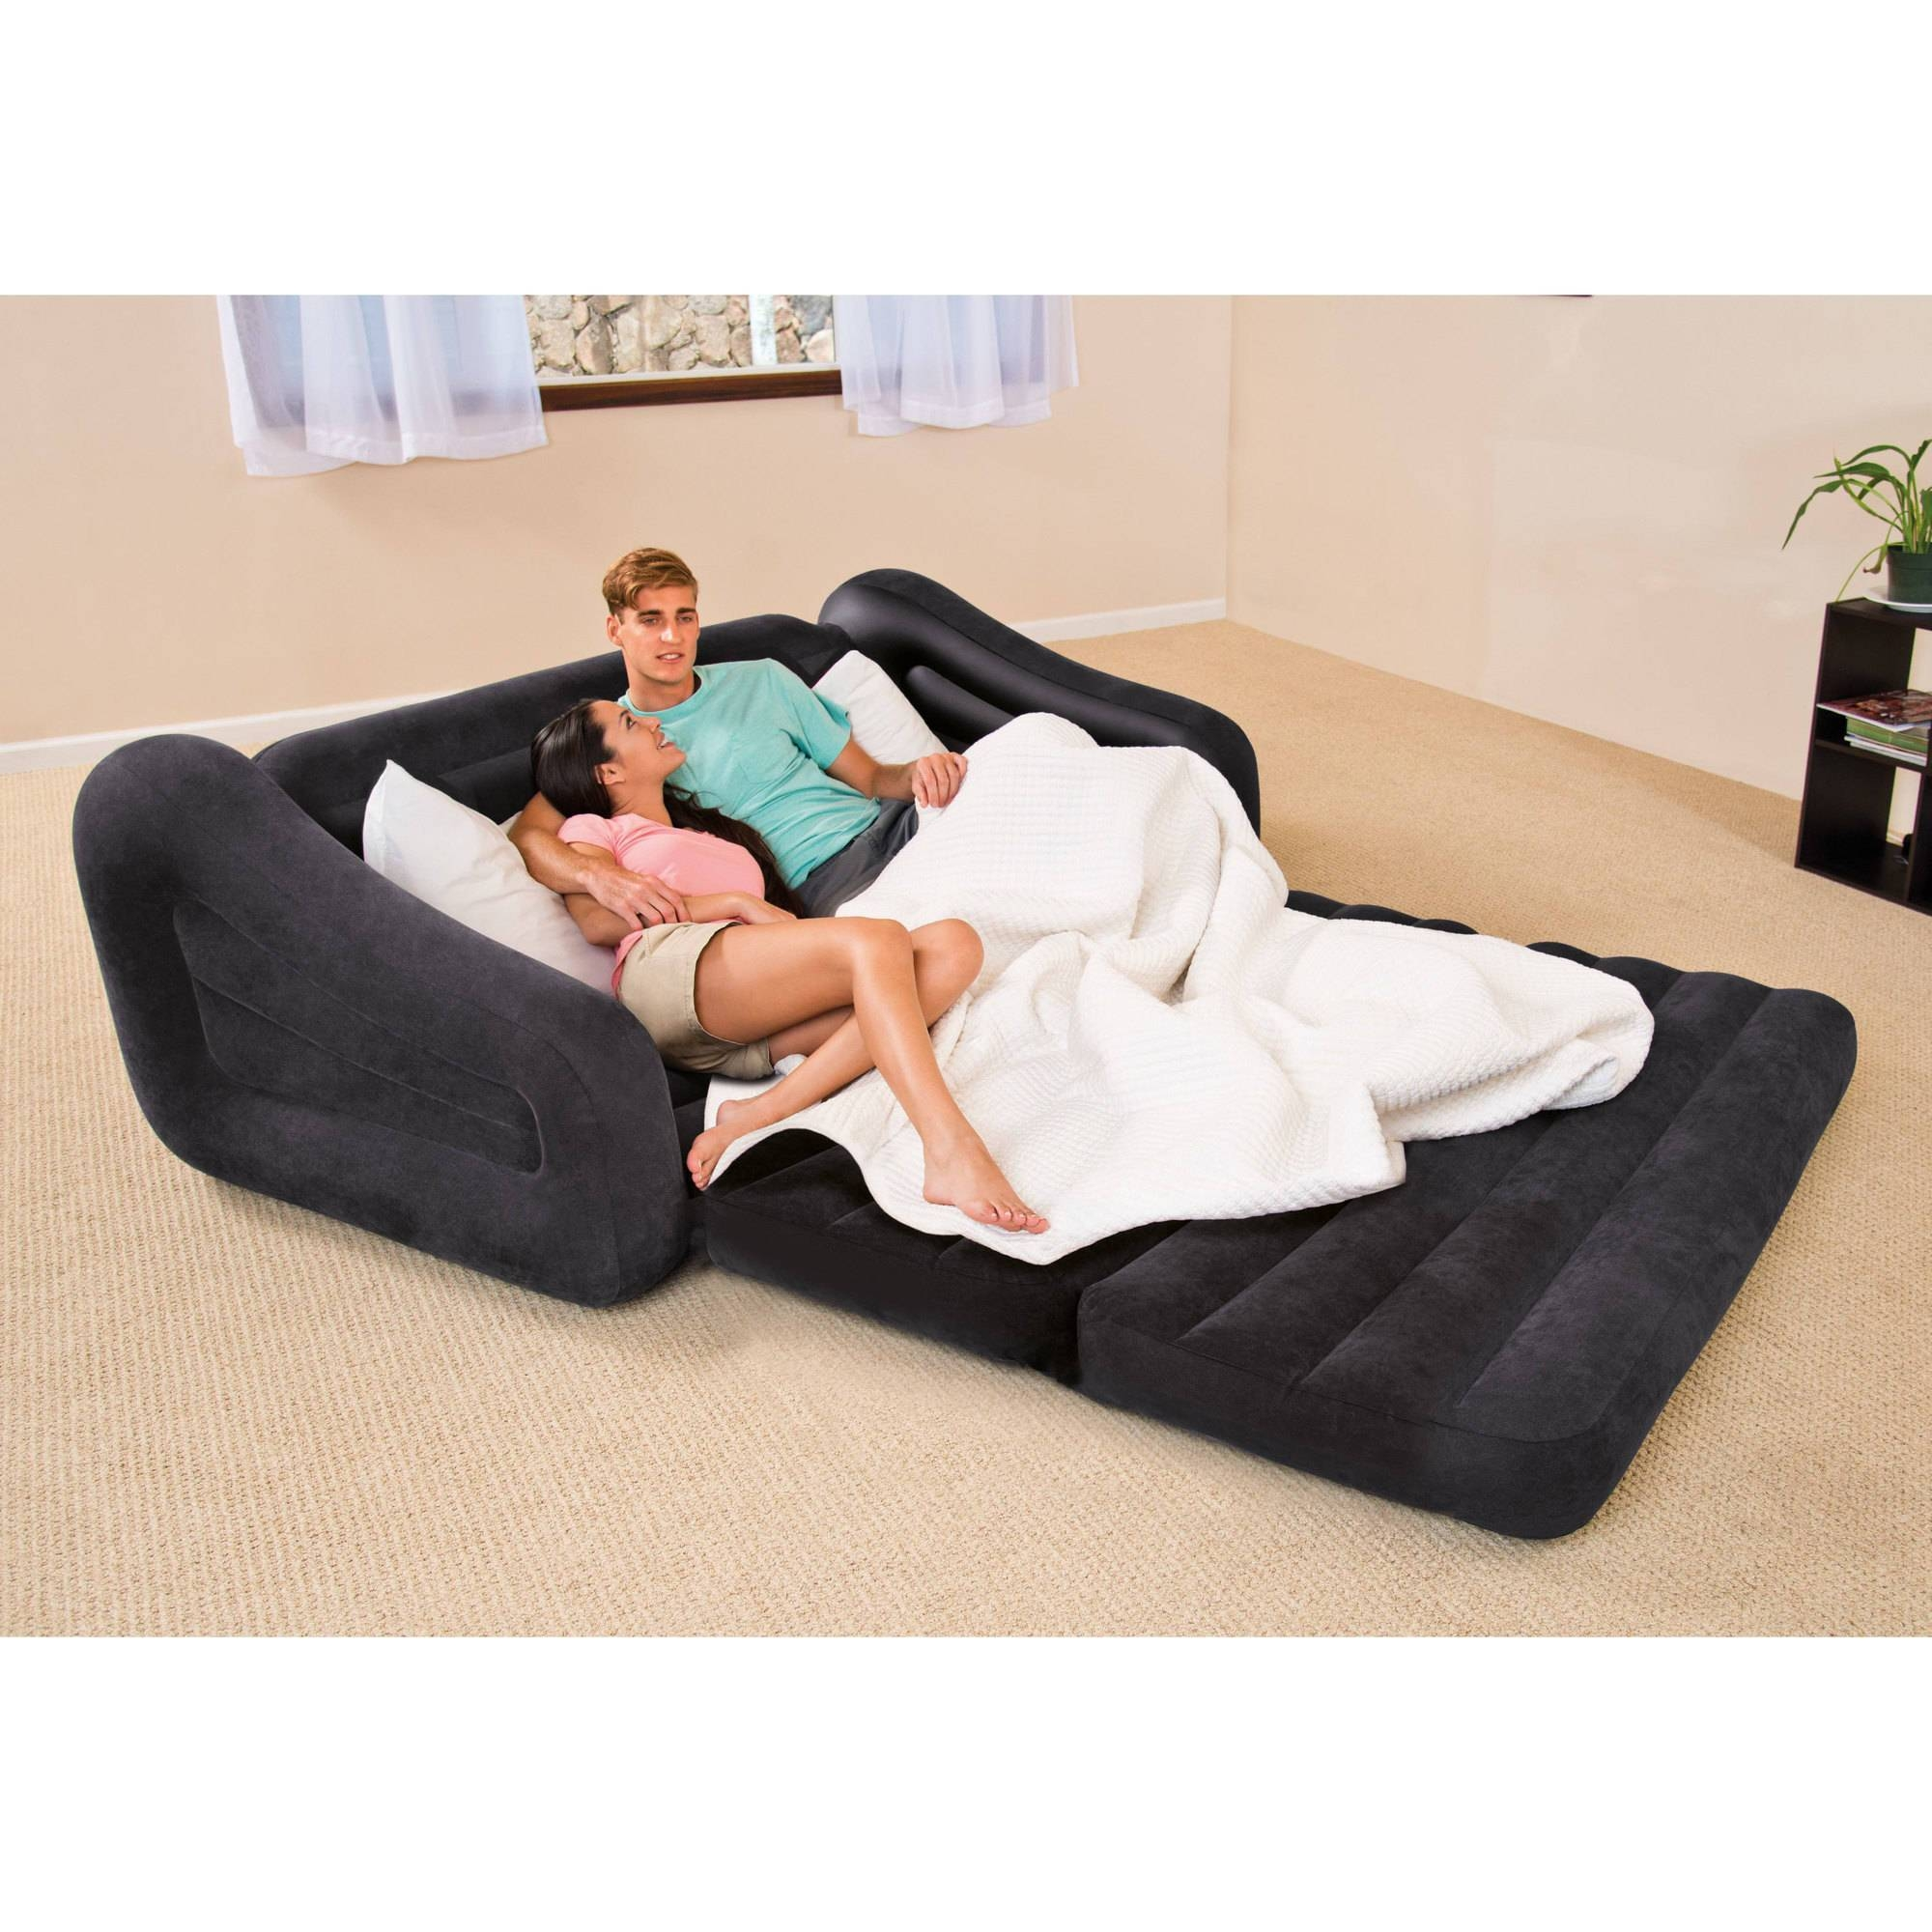 Intex Queen Inflatable Pull Out Sofa Bed - Walmart for Intex Inflatable Sofas (Image 13 of 15)